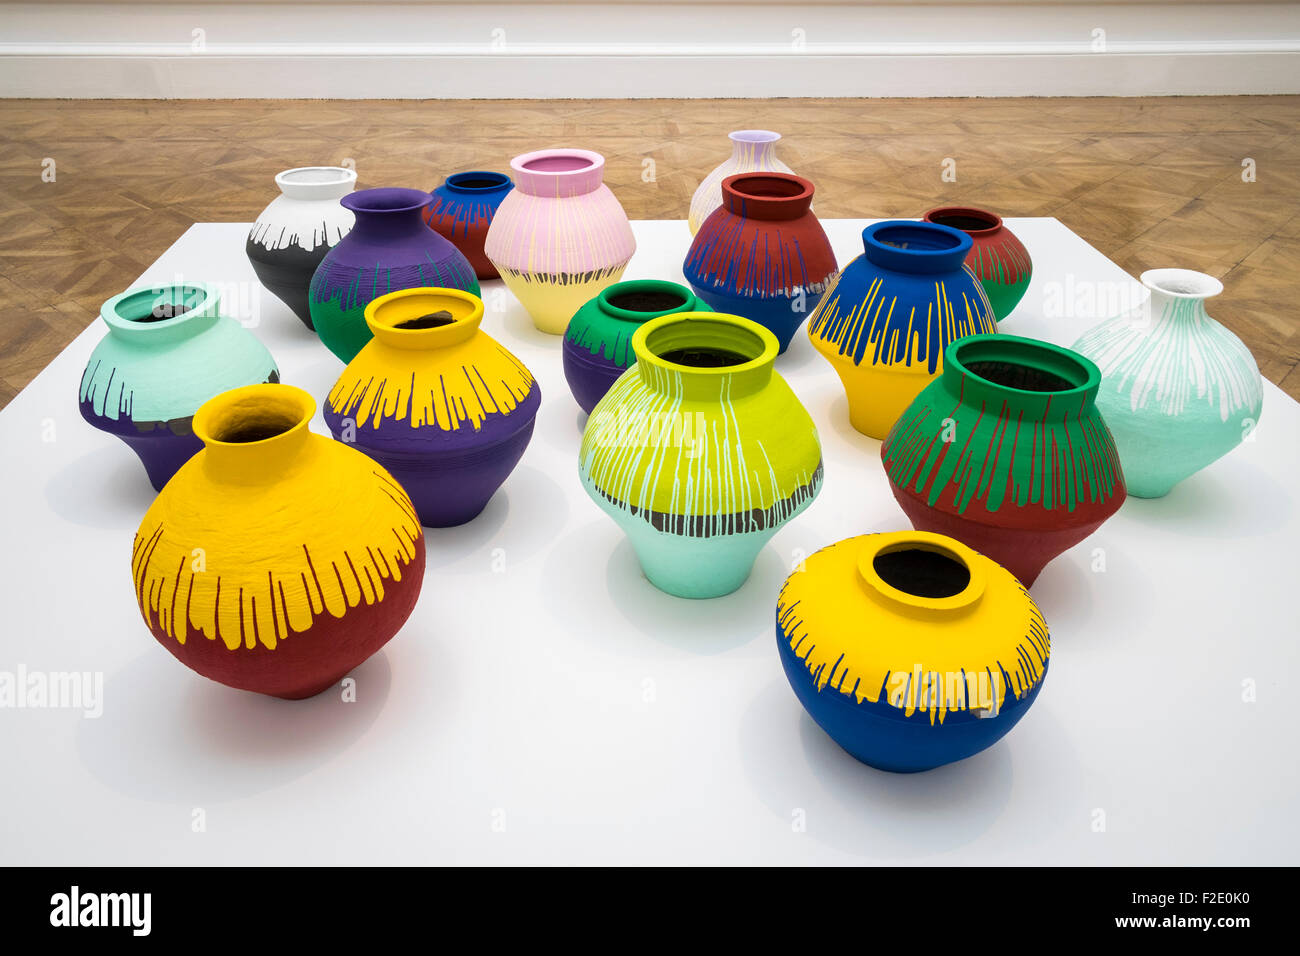 Ai Weiwei, twelve Han Dynasty and four neolithic vases with industrial paint at the Royal Academy of Arts Exhibition - Stock Image